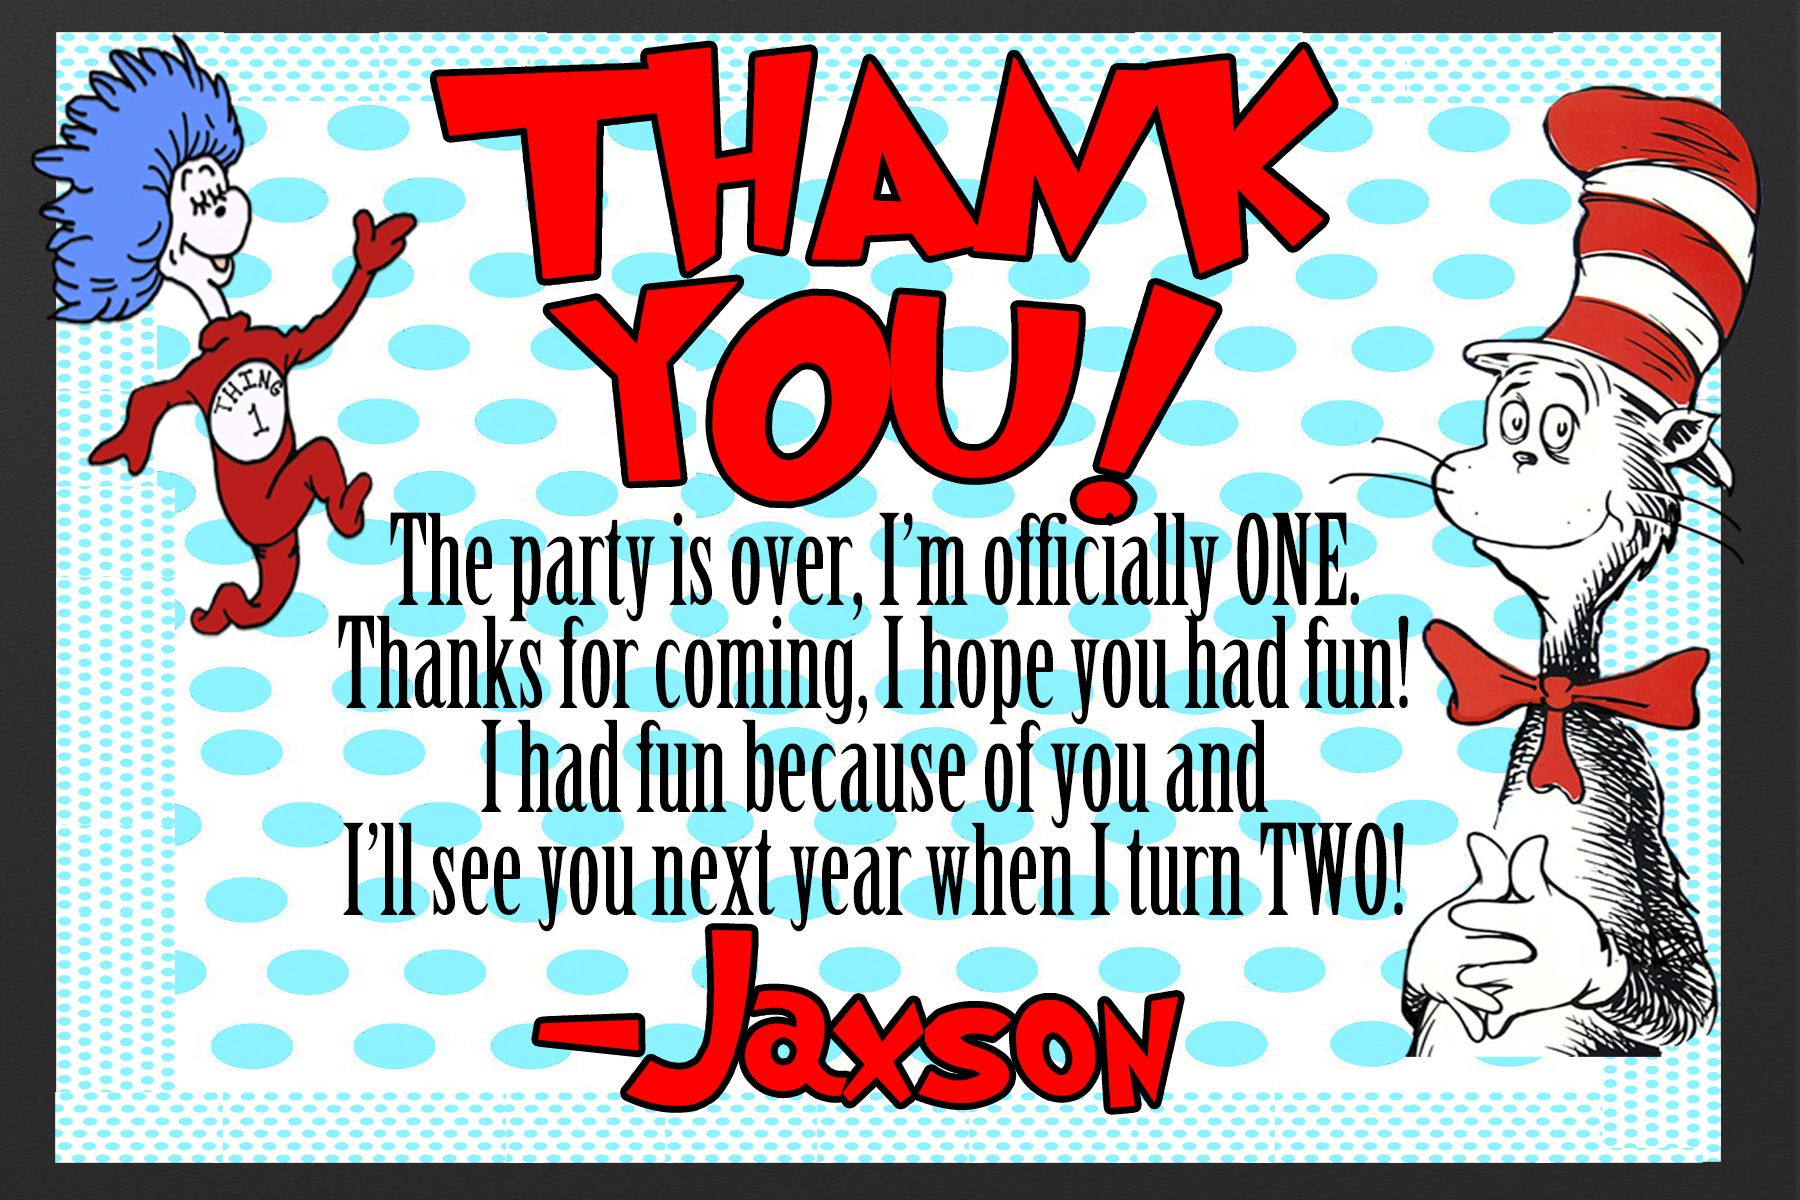 Dr Seuss thank you card for childs birthday party | Party Supplies ...